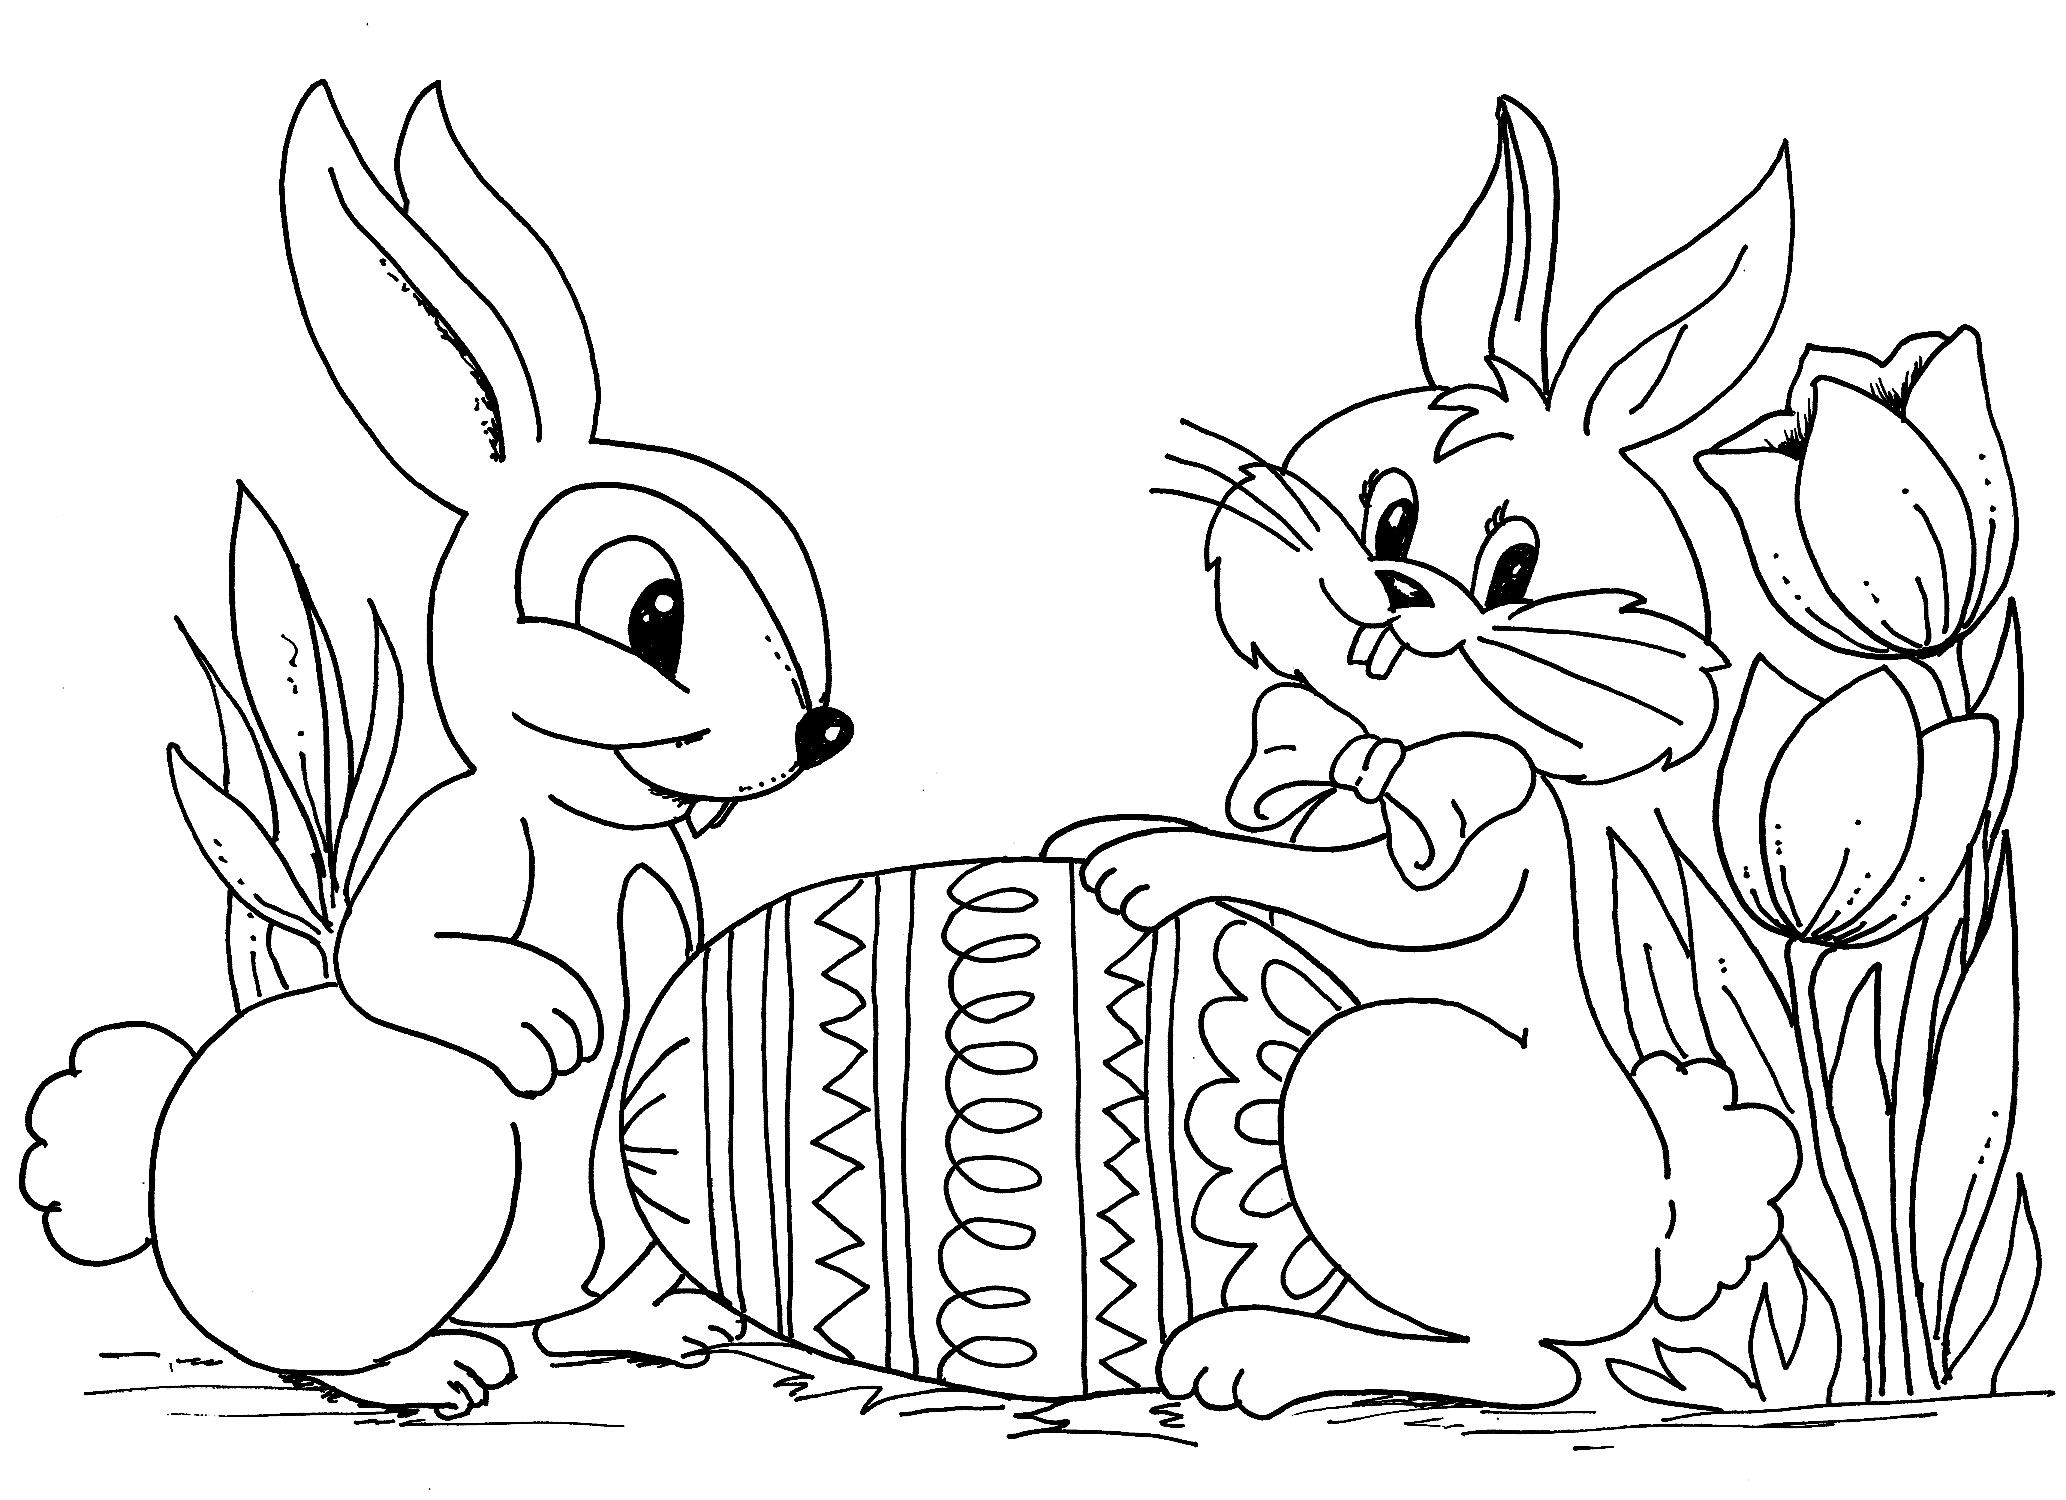 Rabbit coloring pages online - Easter Rabbit Coloring Pages For Kids Free Printable Texas Life